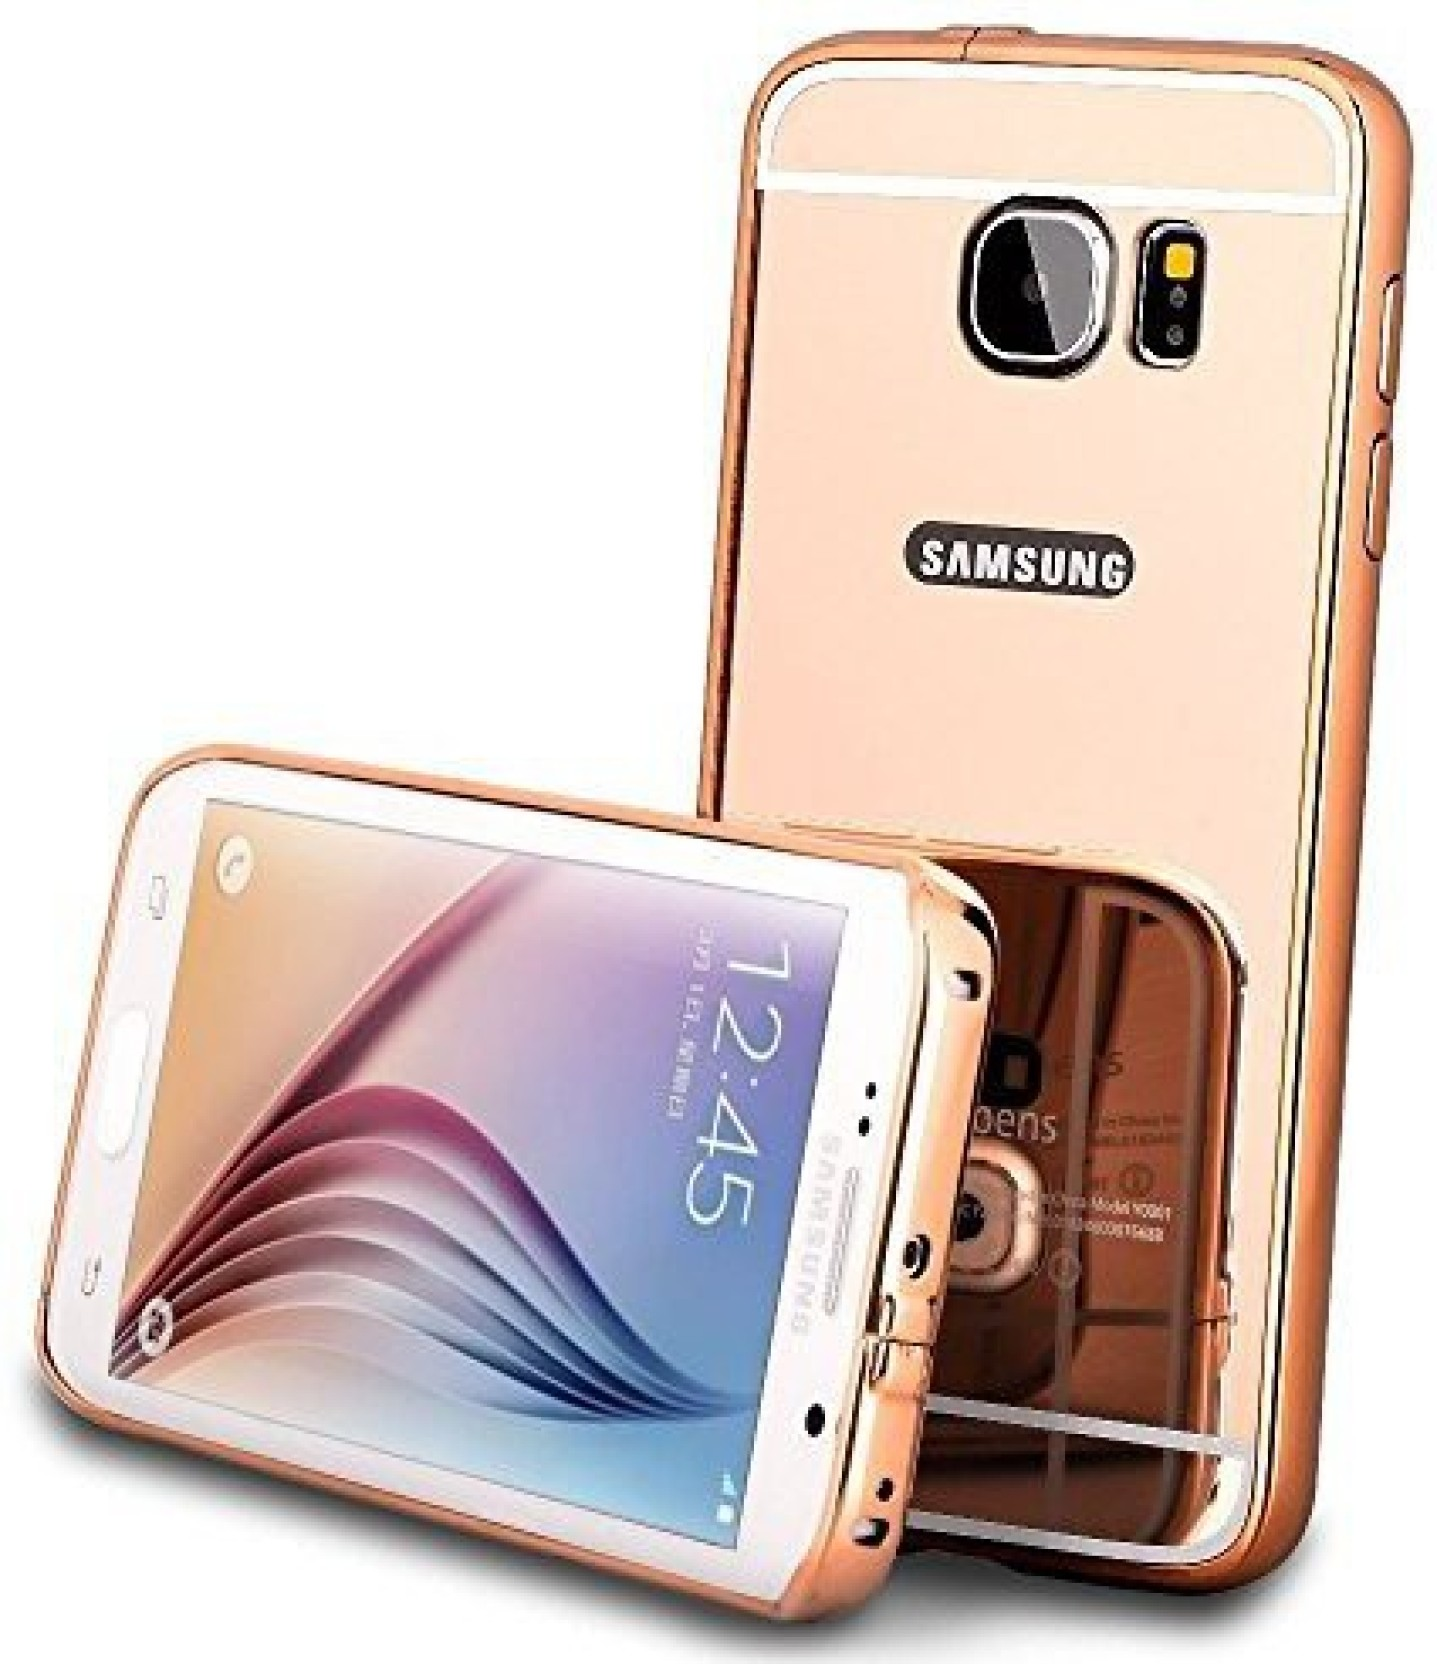 Hutz Bumper Case For Samsung Galaxy C9 Pro With Mirror Back Alumunium Asus Zenfone 2 55 Share